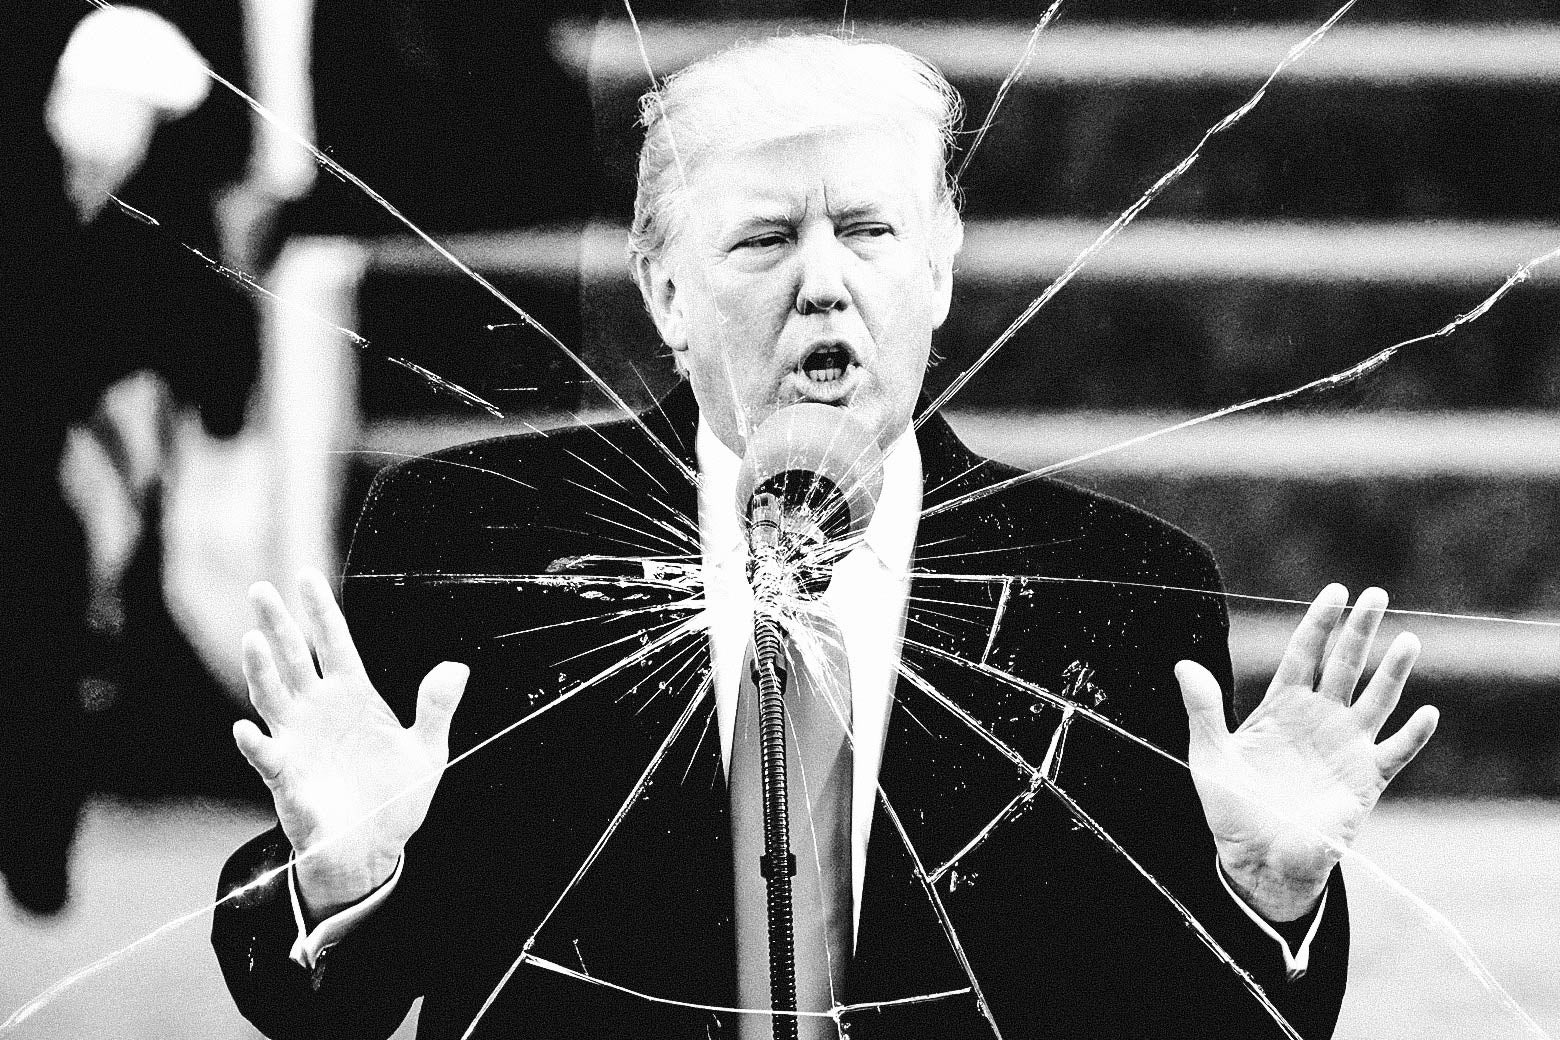 Photo illustration of Trump speaking, but the effect is shattered glass. Like he broke his promises.